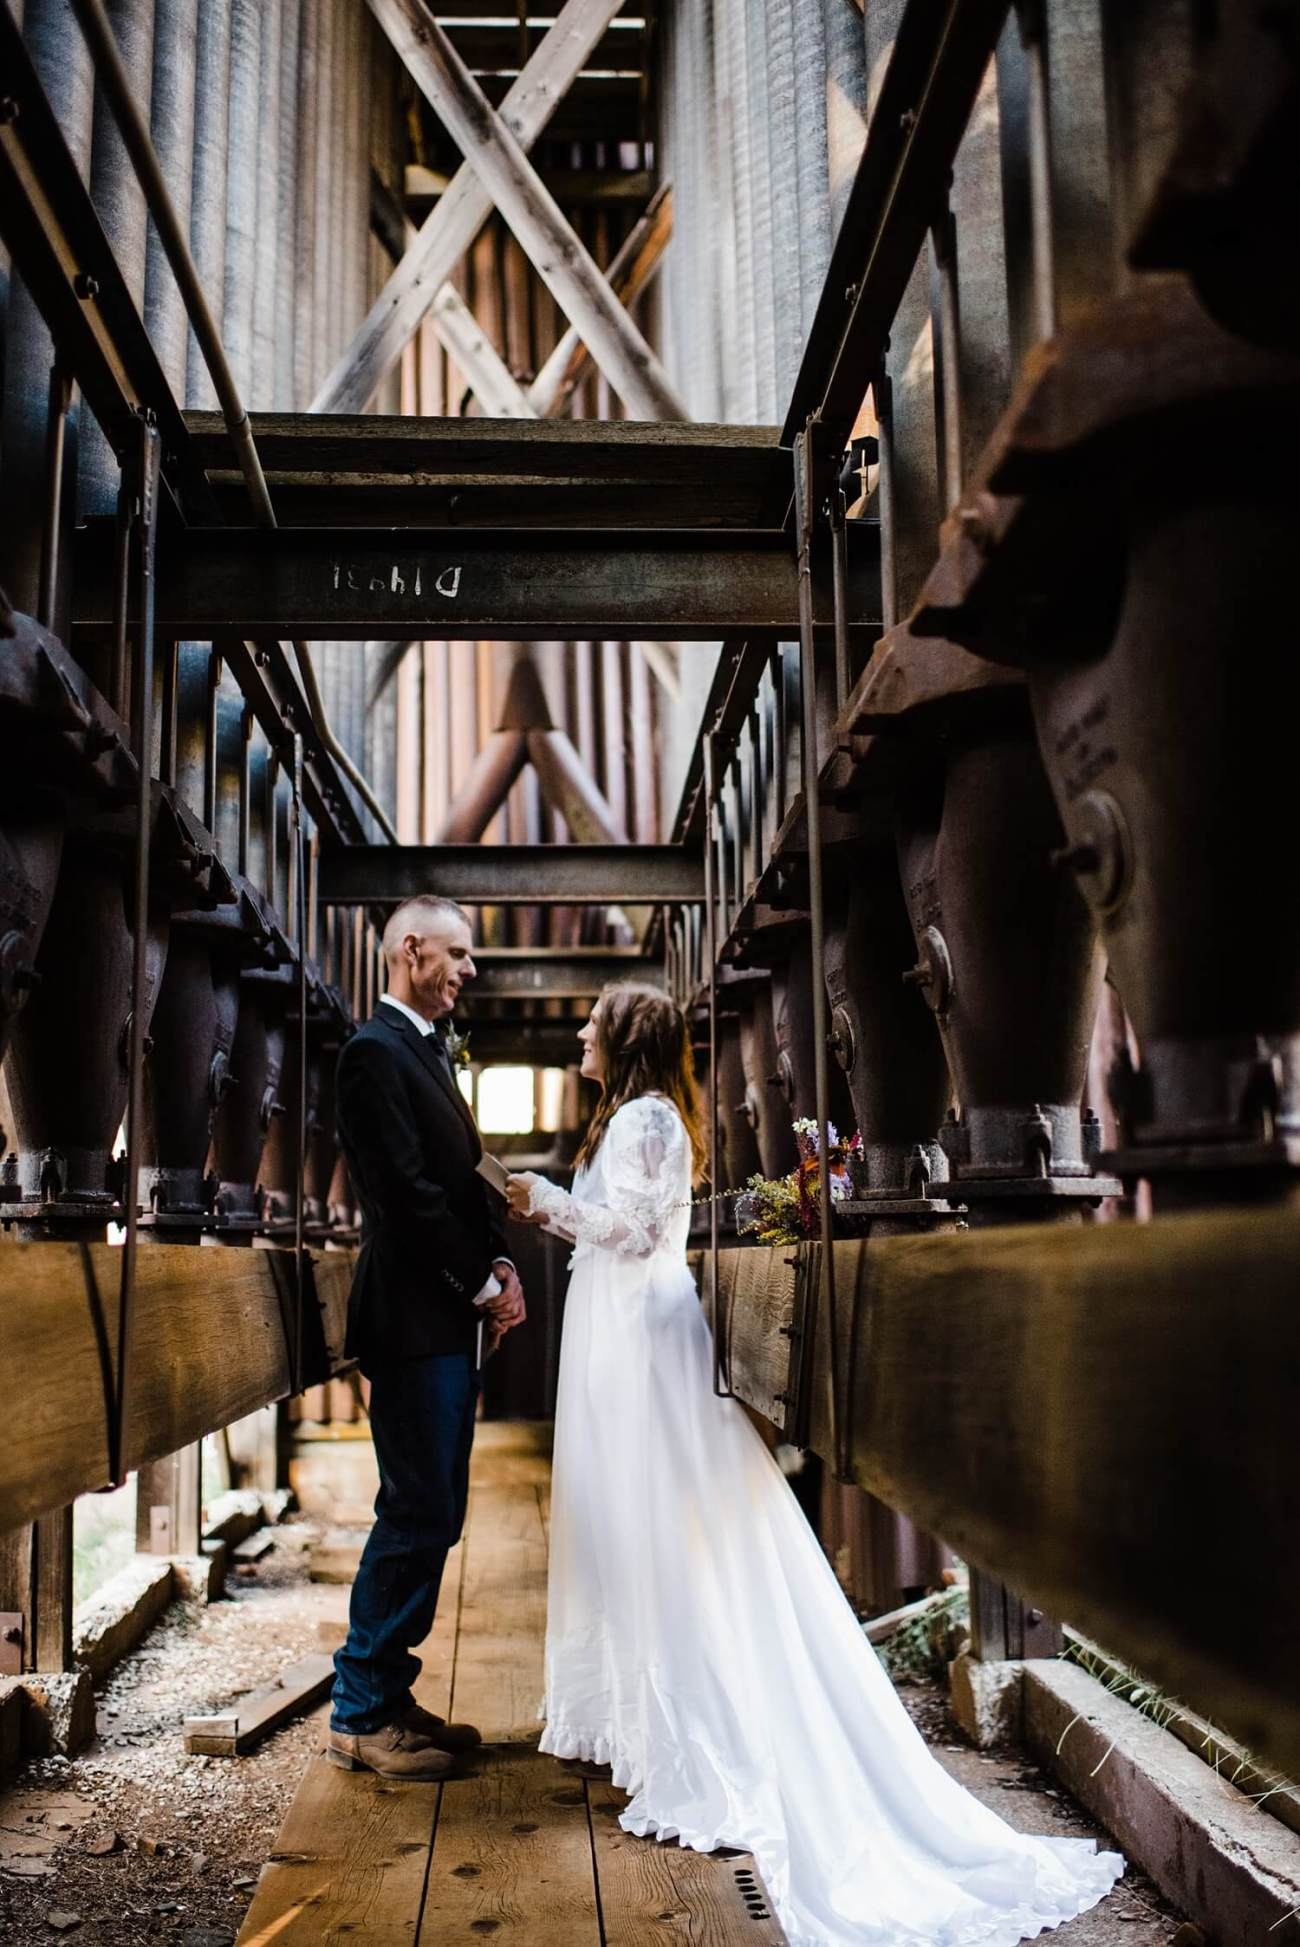 adventure elopement photographer,elopement,ghost town elopement,ghost town wedding,ochoco mountains,oregon elopement,pacific northwest,prineville wedding,sam starns,western elopement,